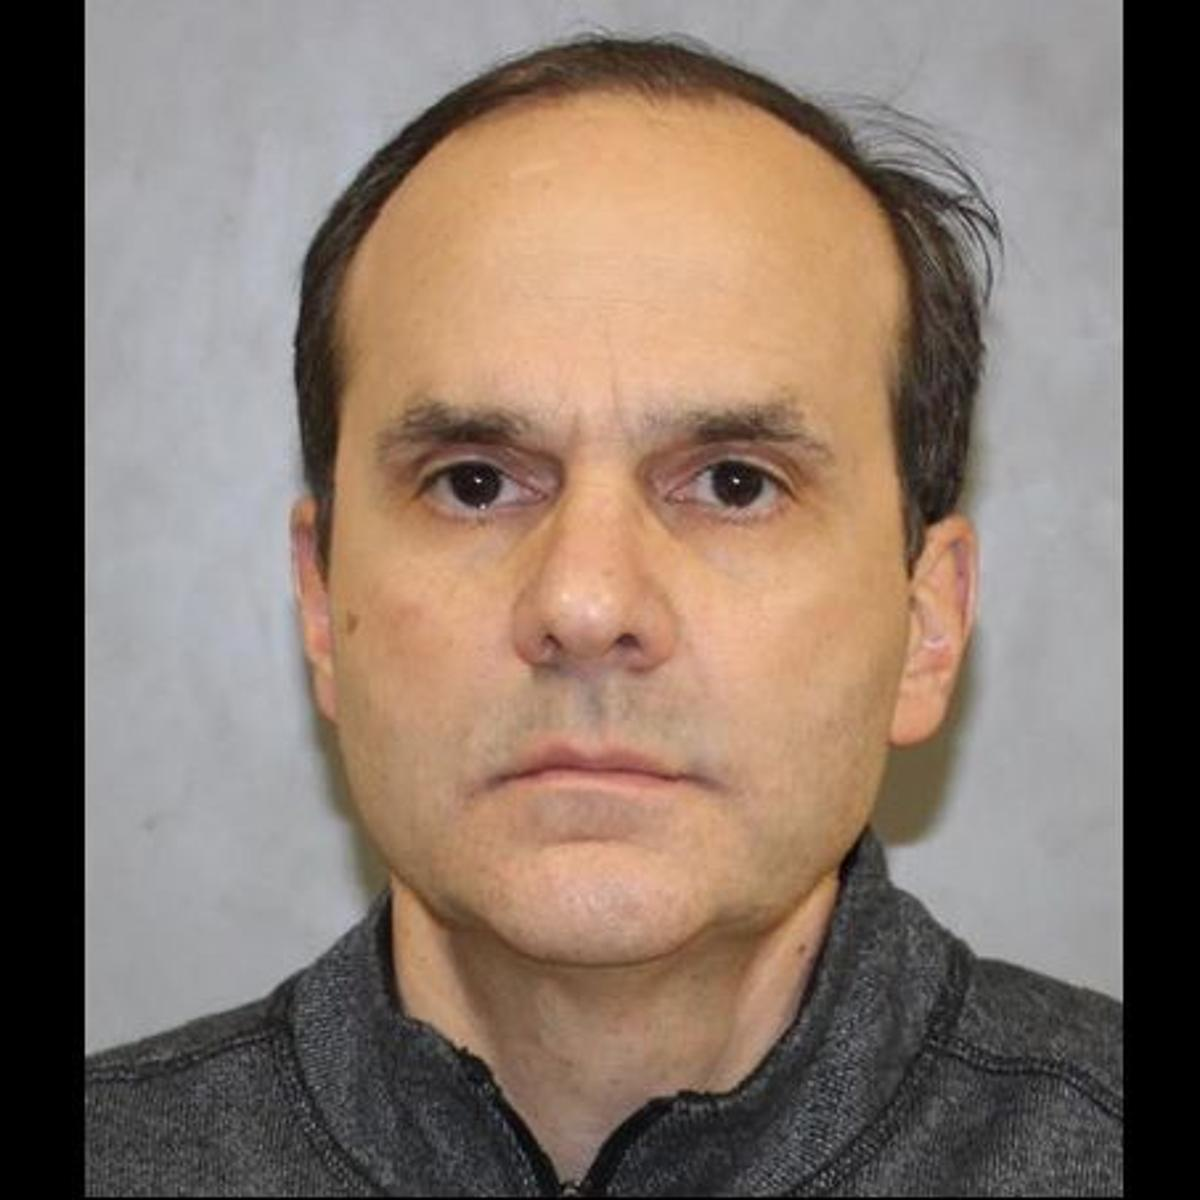 Dentists convicted of sex crimes